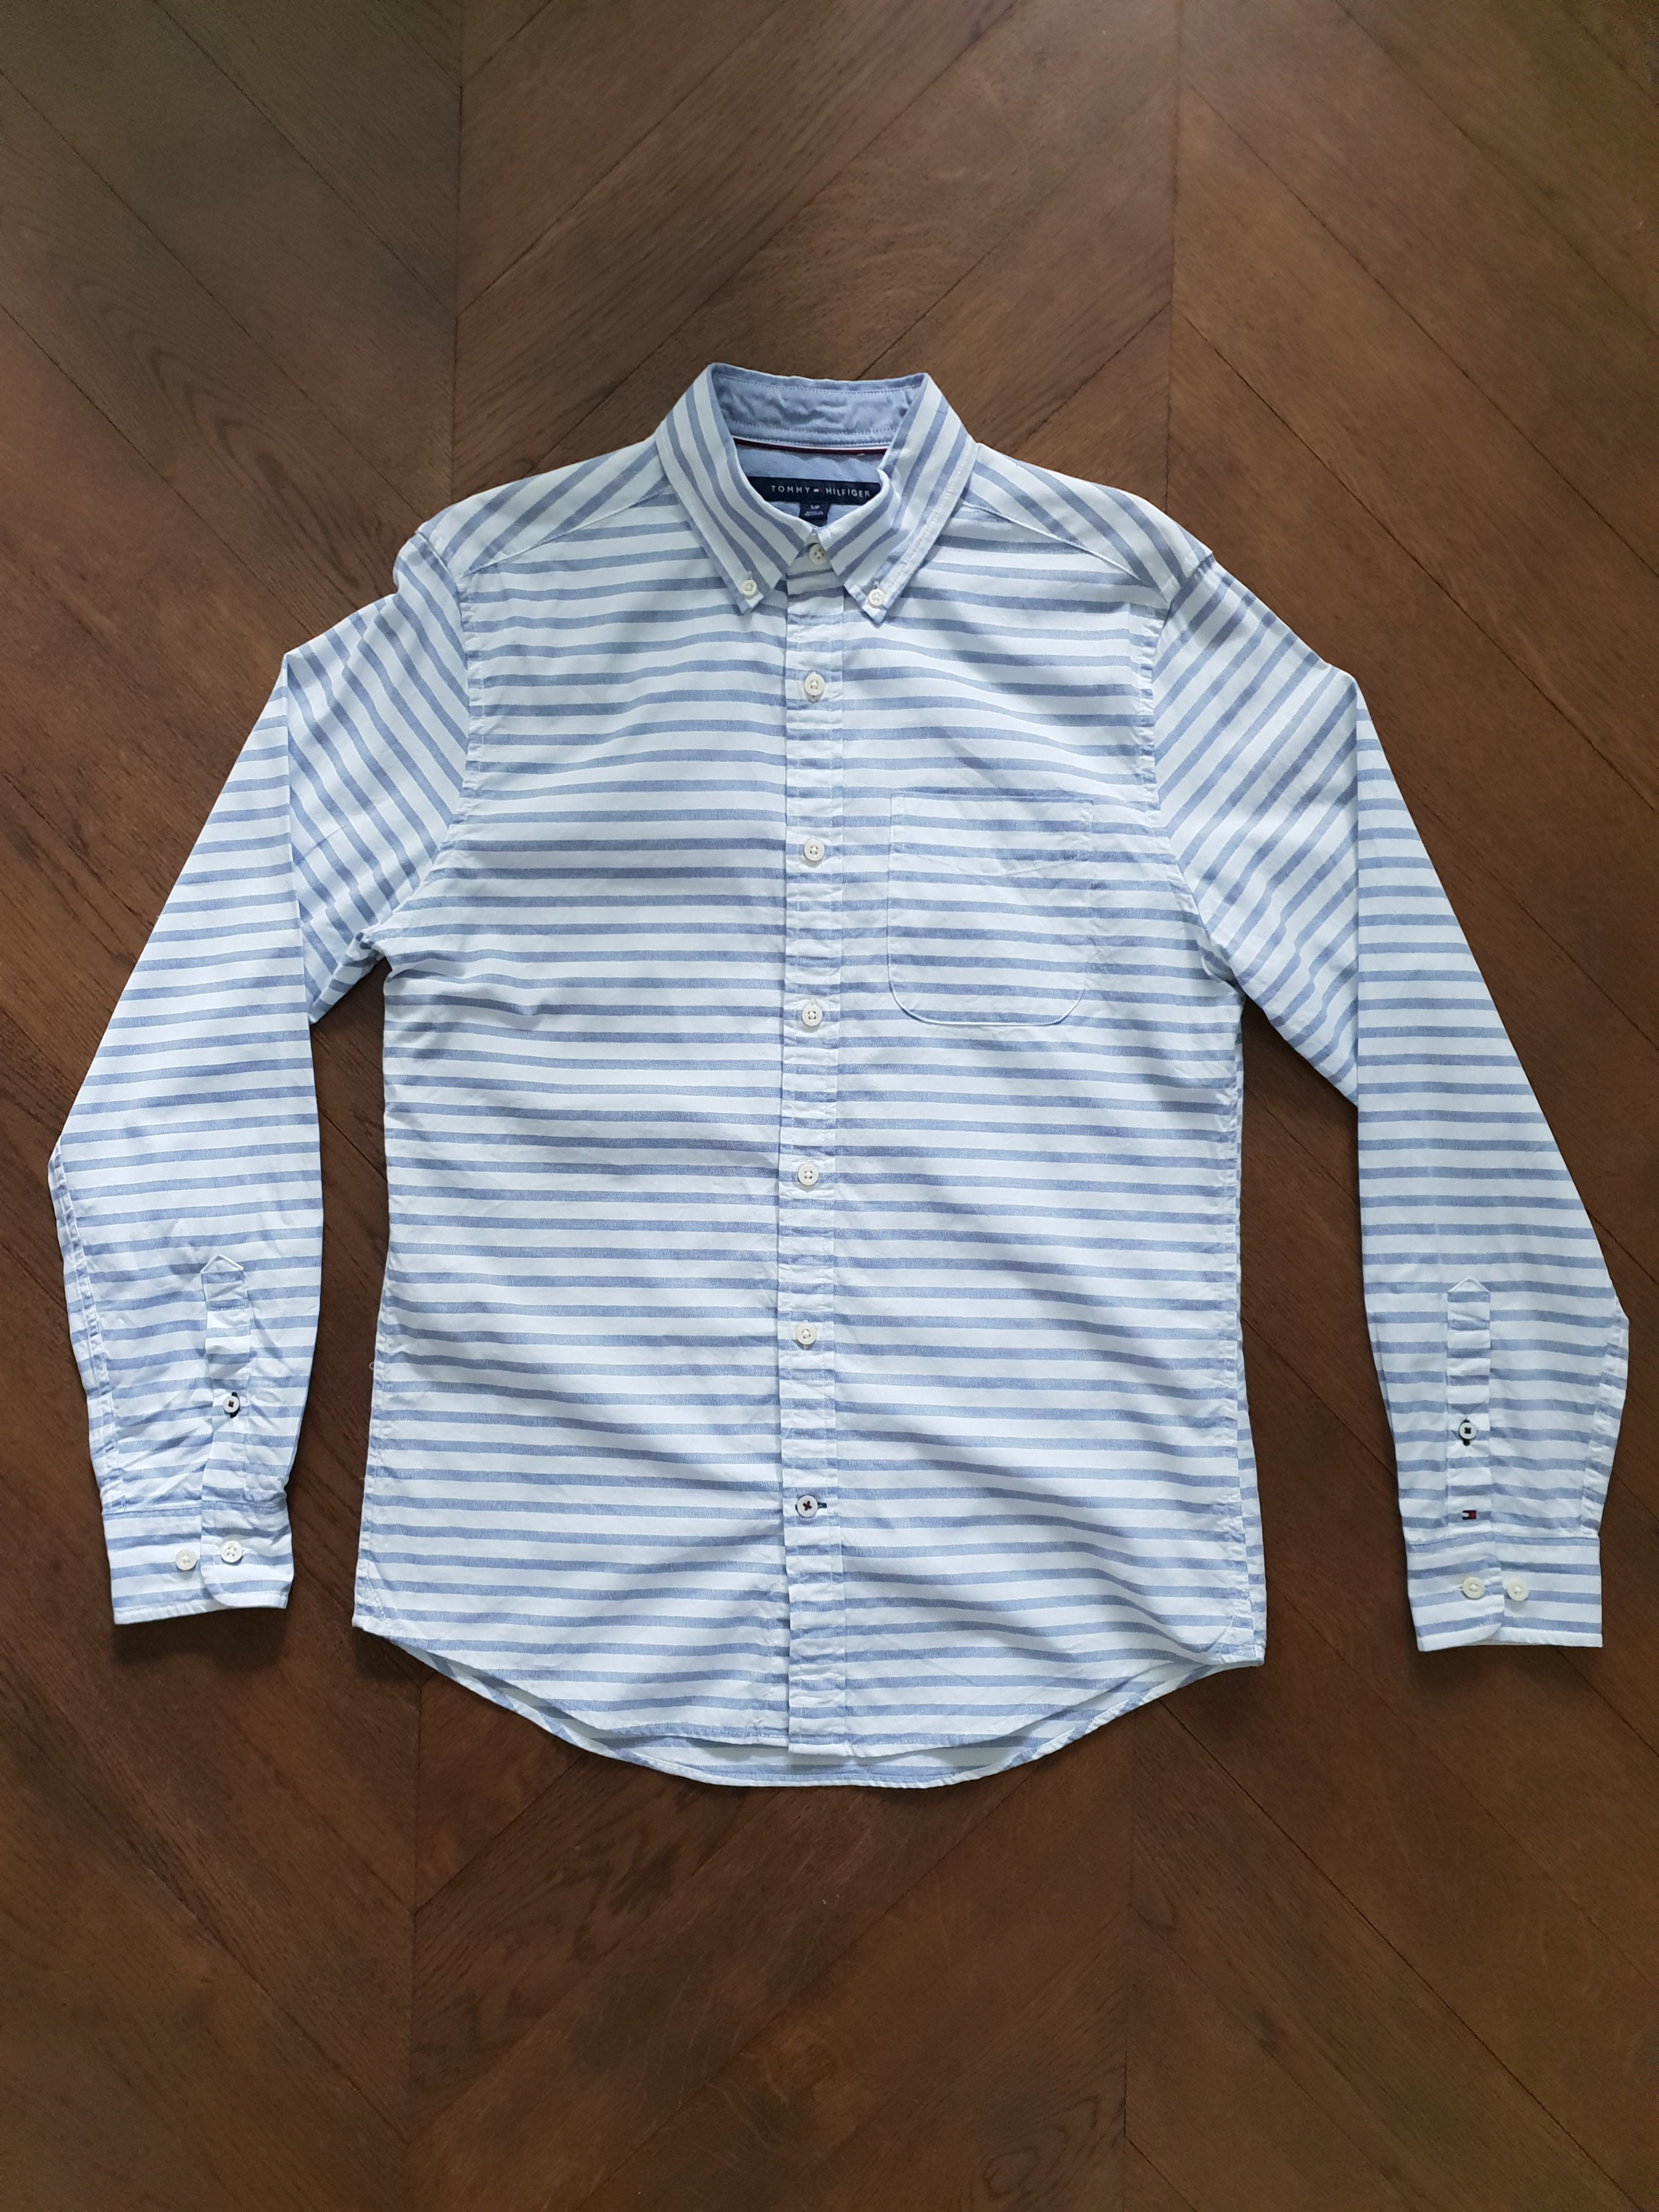 220916f4 Tommy Hilfiger long sleeve shirt, Men's Fashion, Clothes, Tops on ...